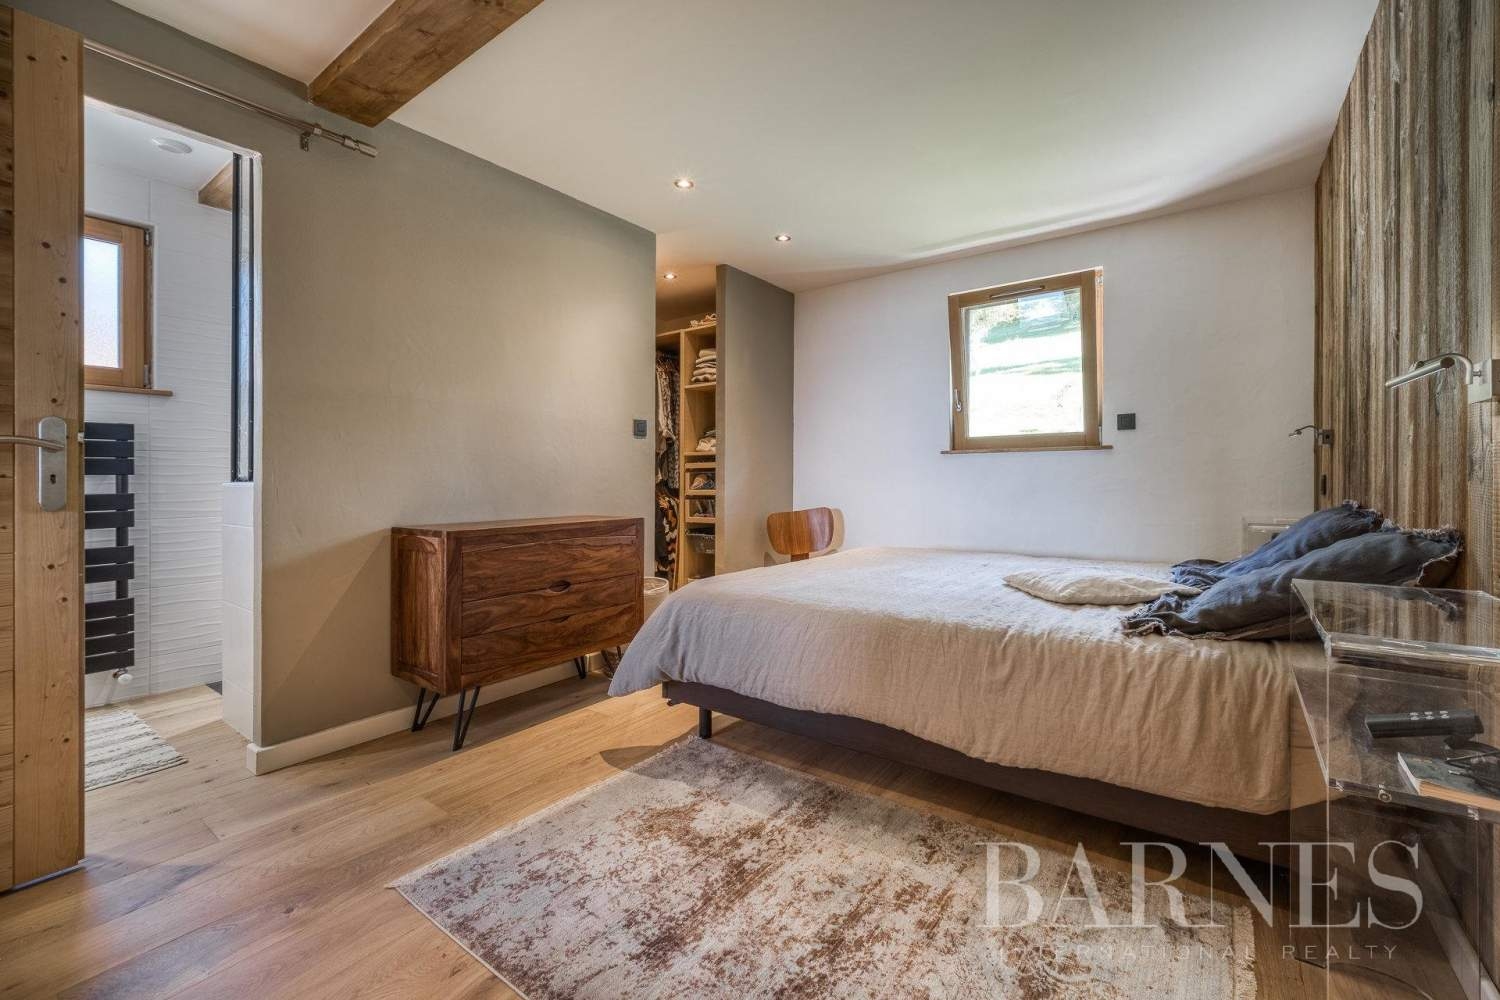 Exclusive to Barnes - Stunning ski-in chalet situated on La Princesse ski slopes picture 6